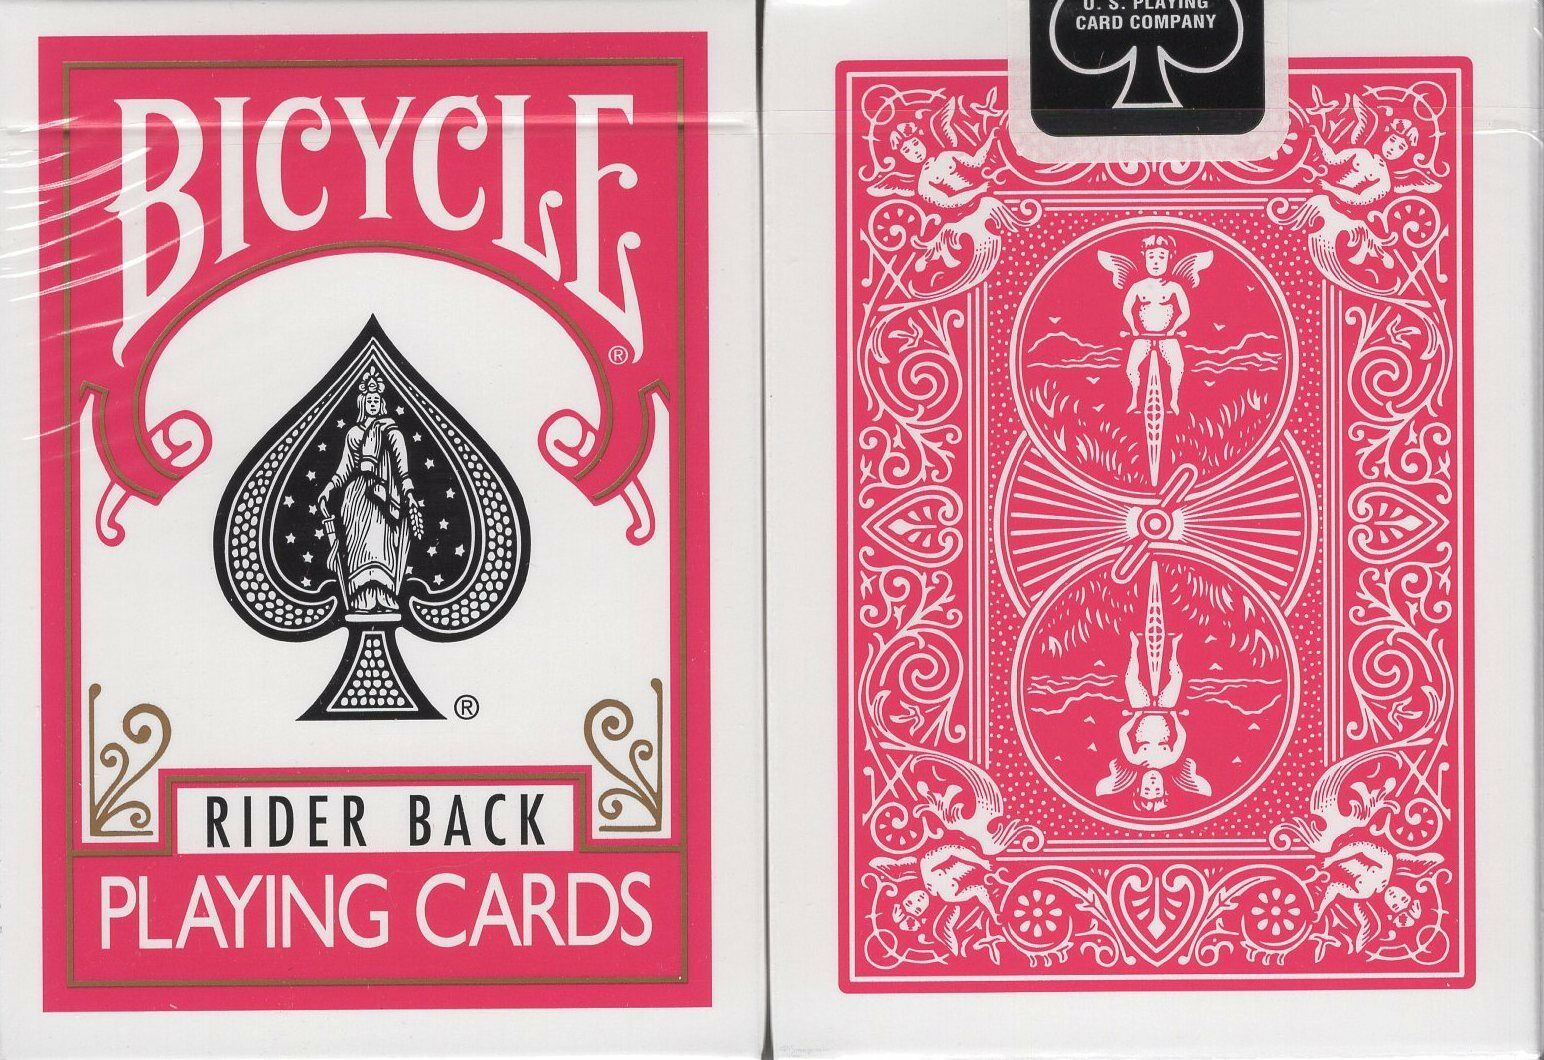 Fuchsia Rider Back Bicycle Playing Cards Poker Size Deck USPCC Pink Limited New